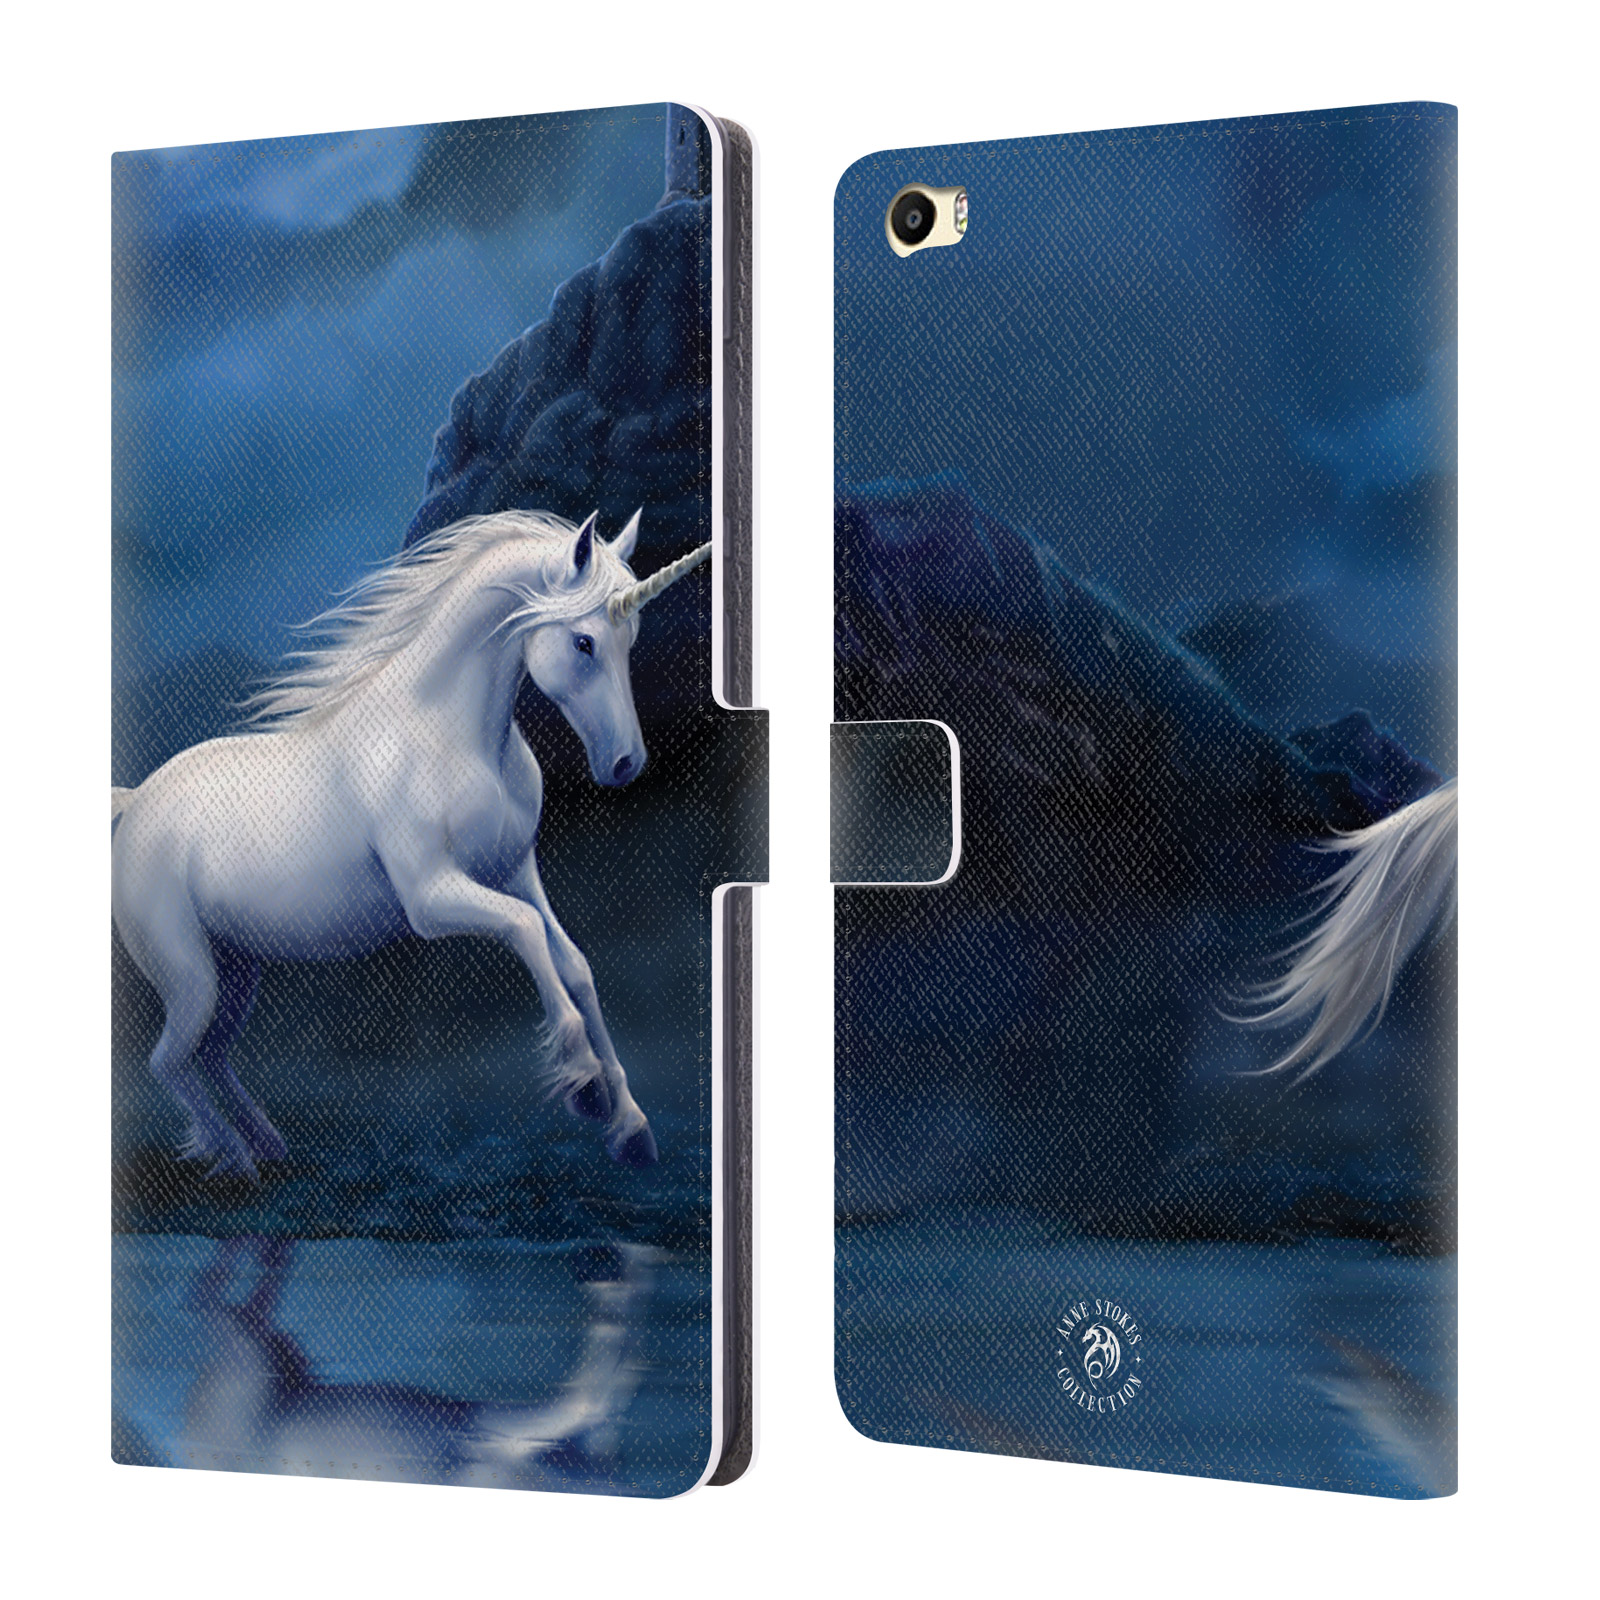 OFFICIAL ANNE STOKES MYTHICAL CREATURES LEATHER BOOK WALLET CASE COVER FOR HUAWEI PHONES